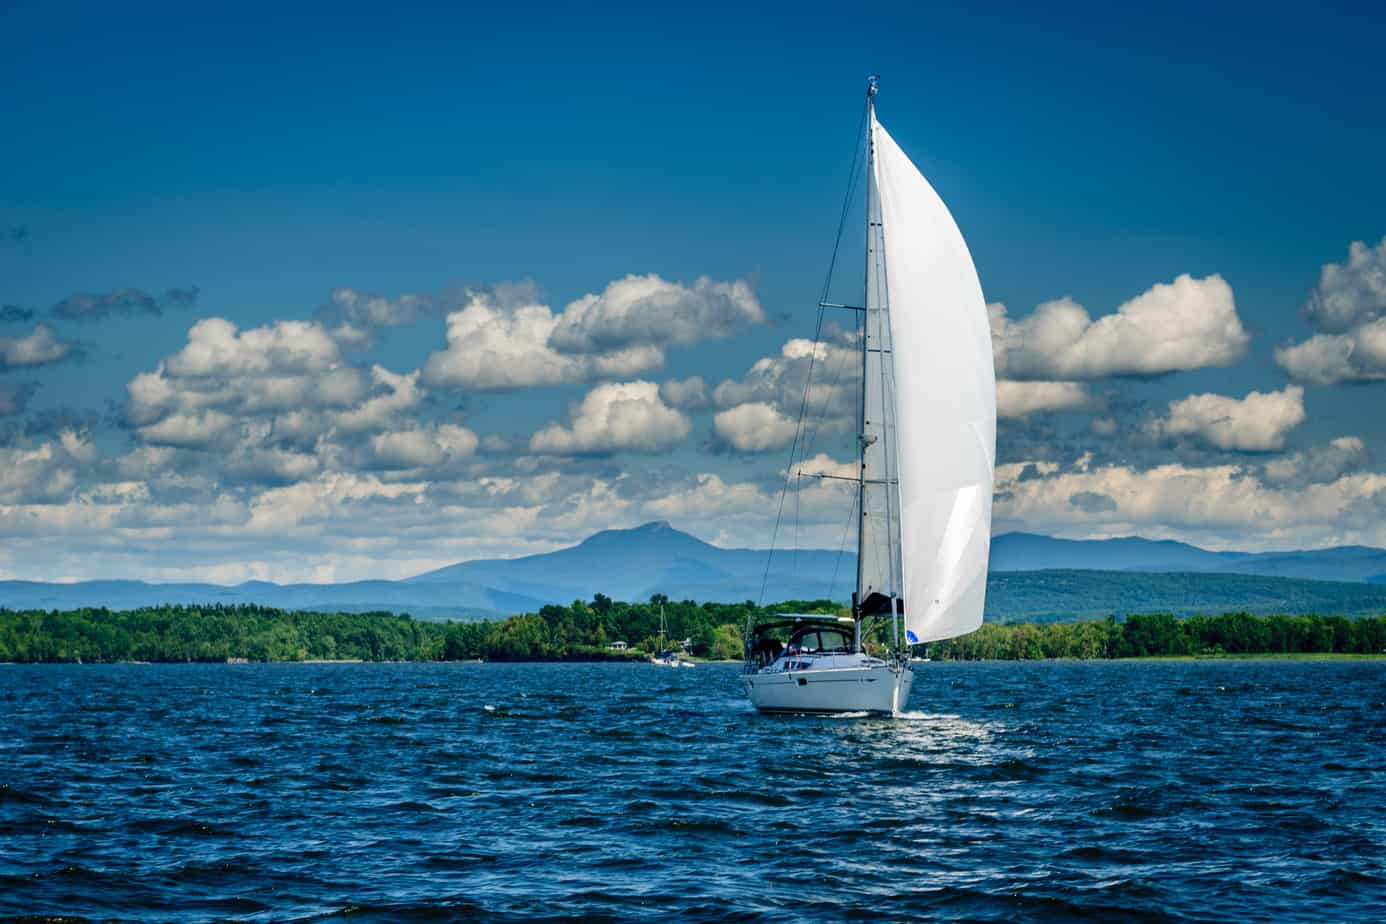 things to do in burlington vt - white sailboat on the blue waters of lake champlain